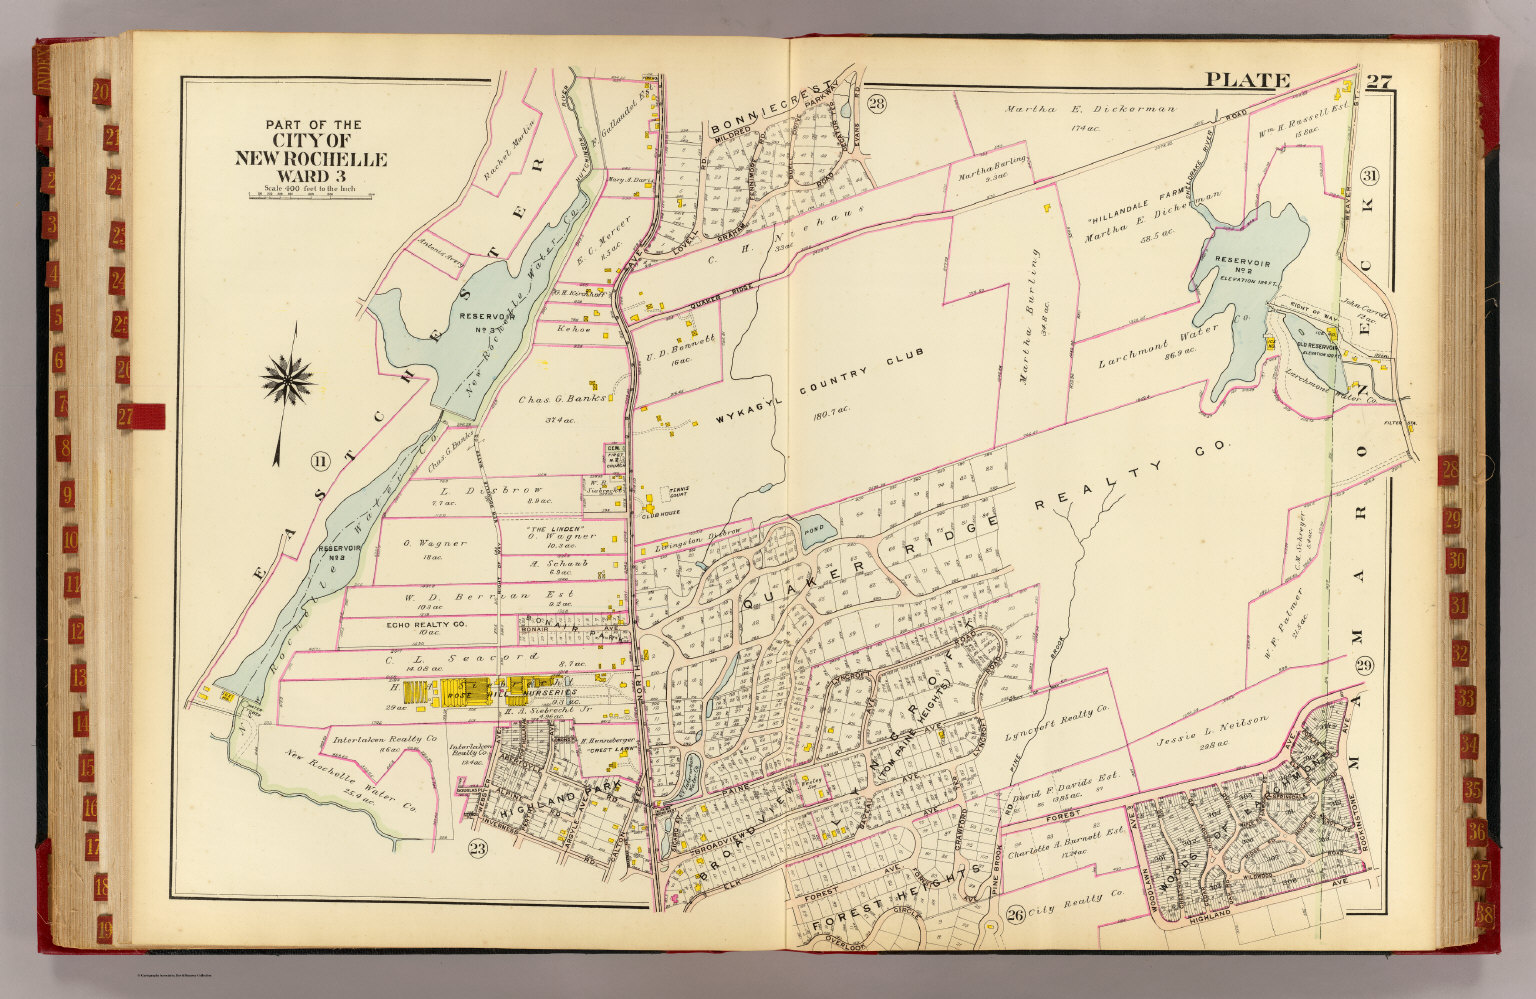 New Rochelle ward 3 David Rumsey Historical Map Collection